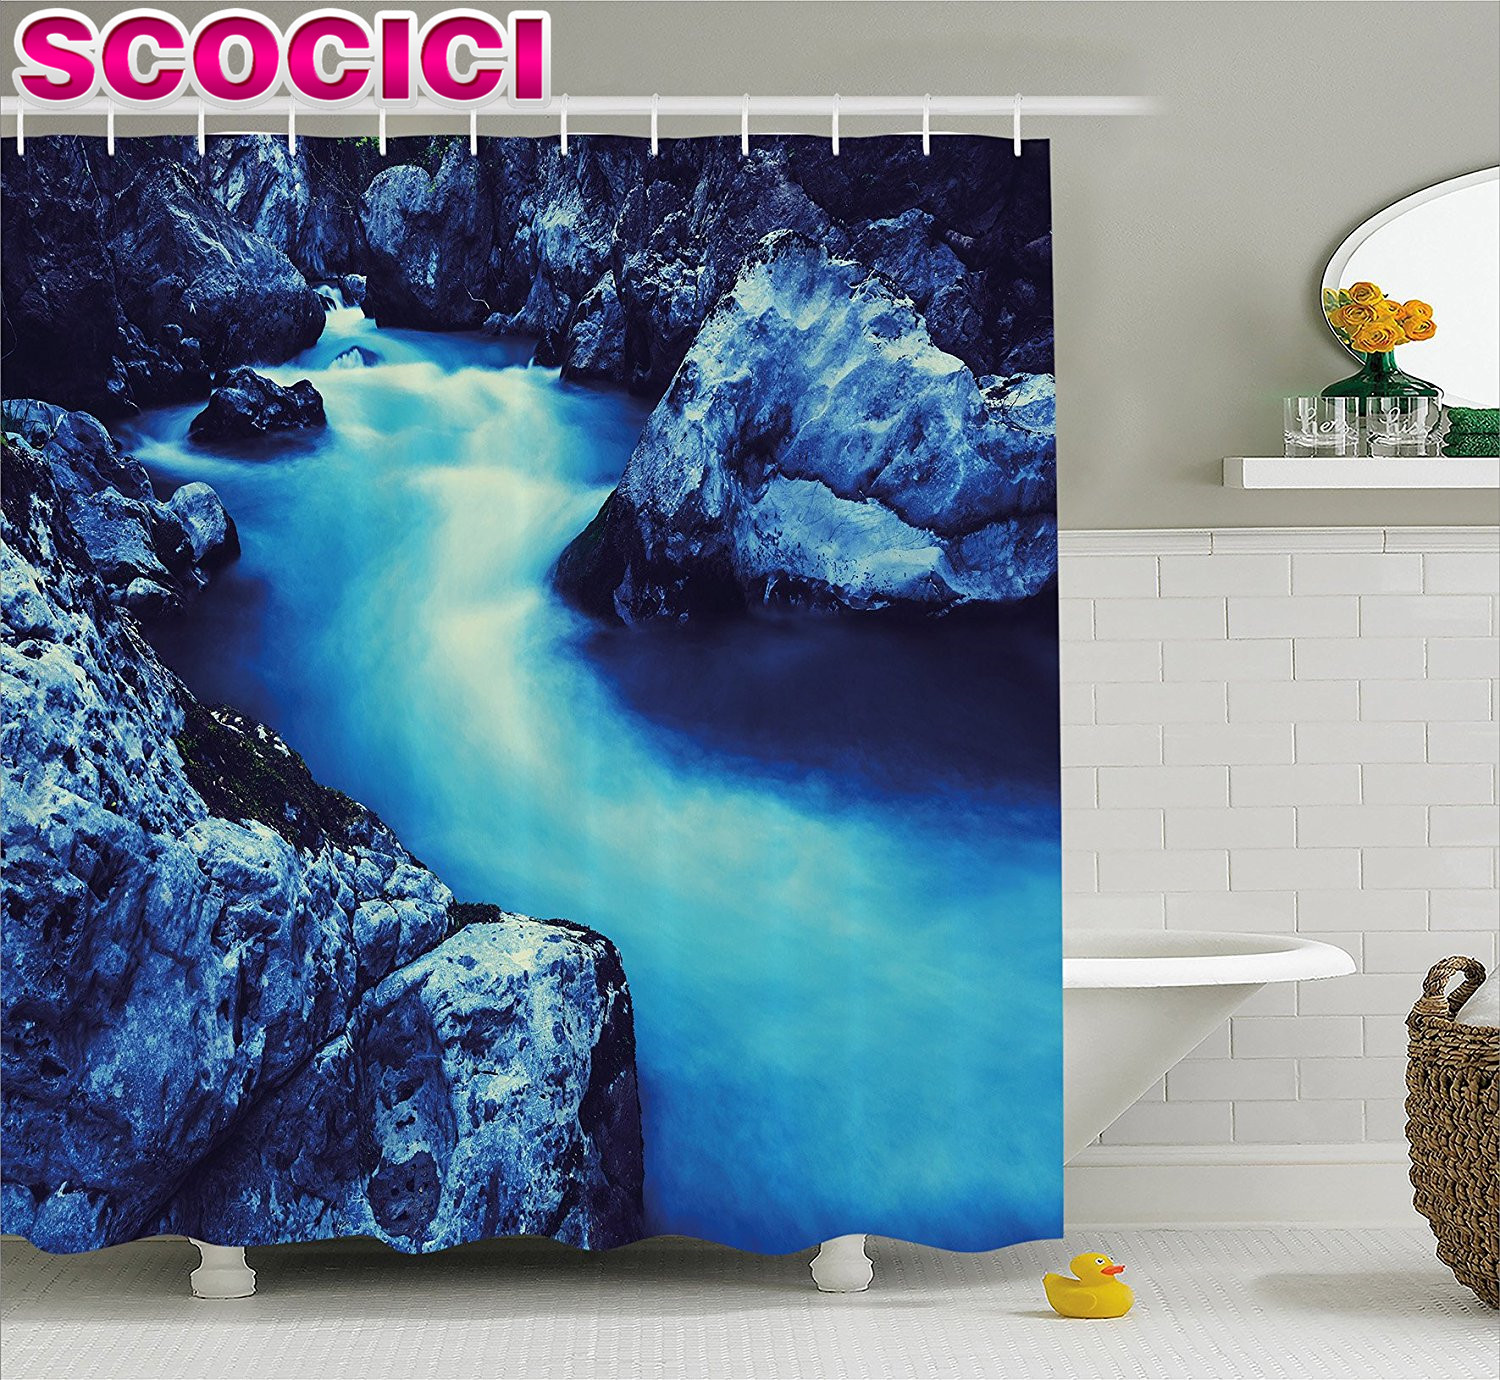 Frozen bathroom decor - Waterfall Decor Shower Curtain Frozen Dangerous Lake With Atmosphere Of A Cave And Snow On The Rocks Fabric Bathroom Decor Set B